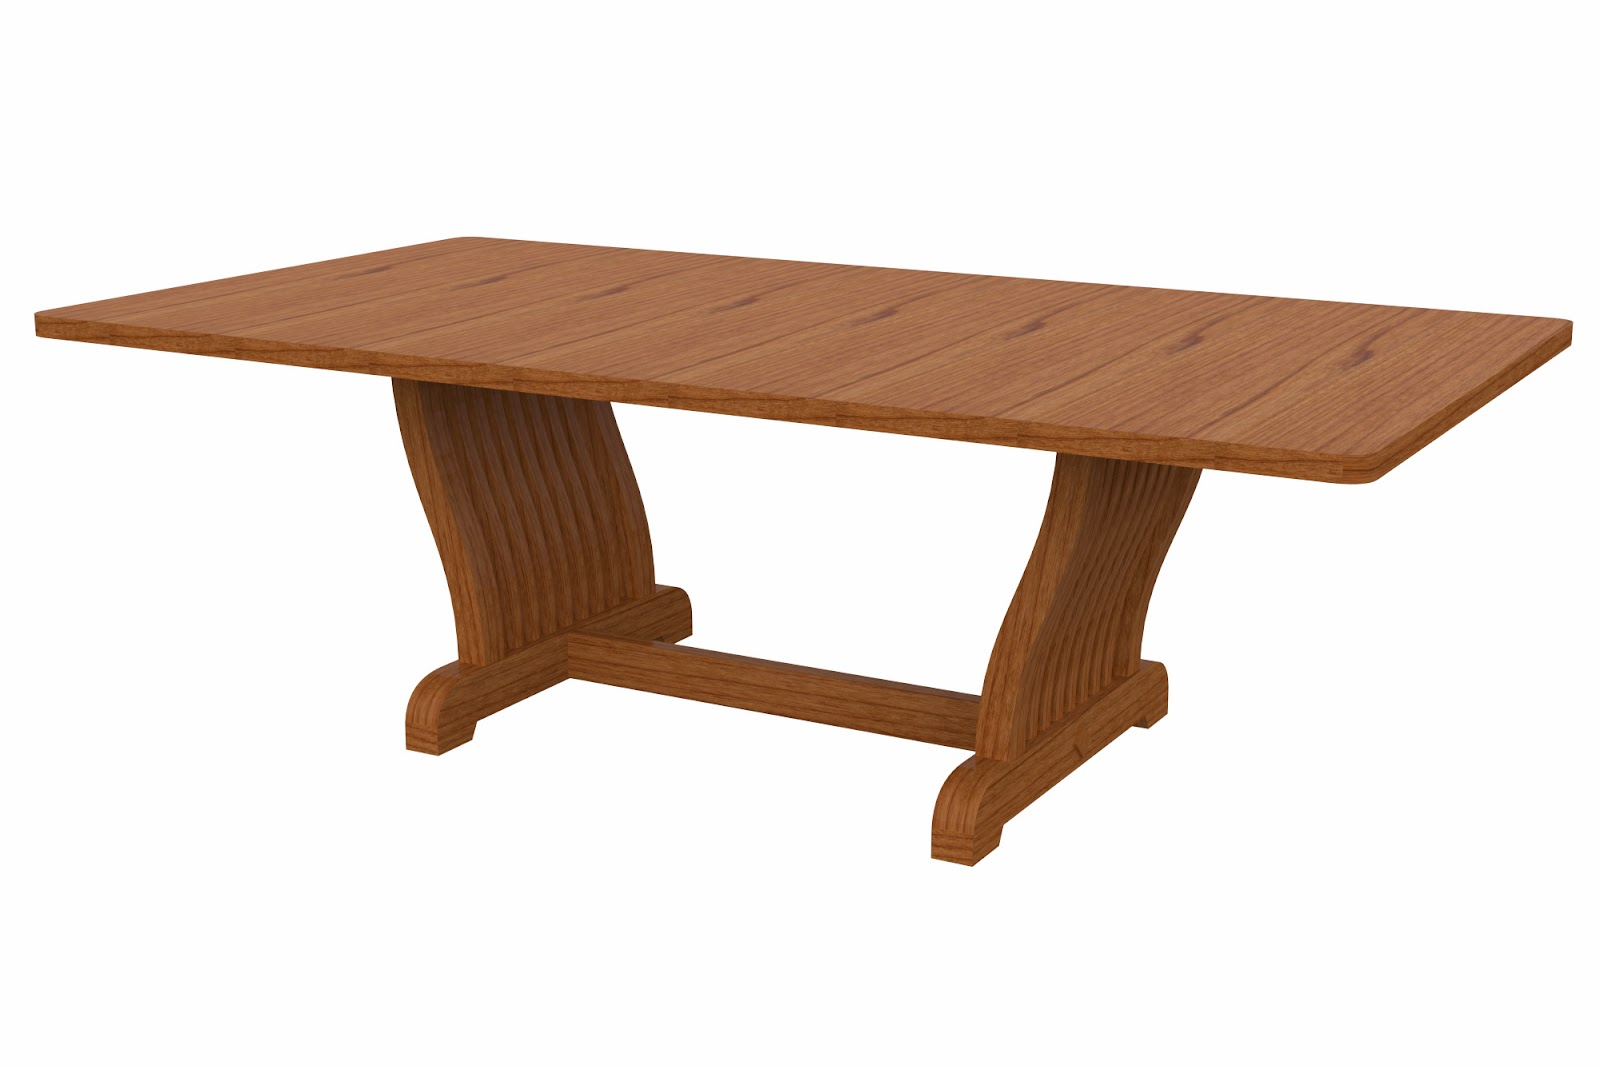 Western conference table conference table in the western for Table western